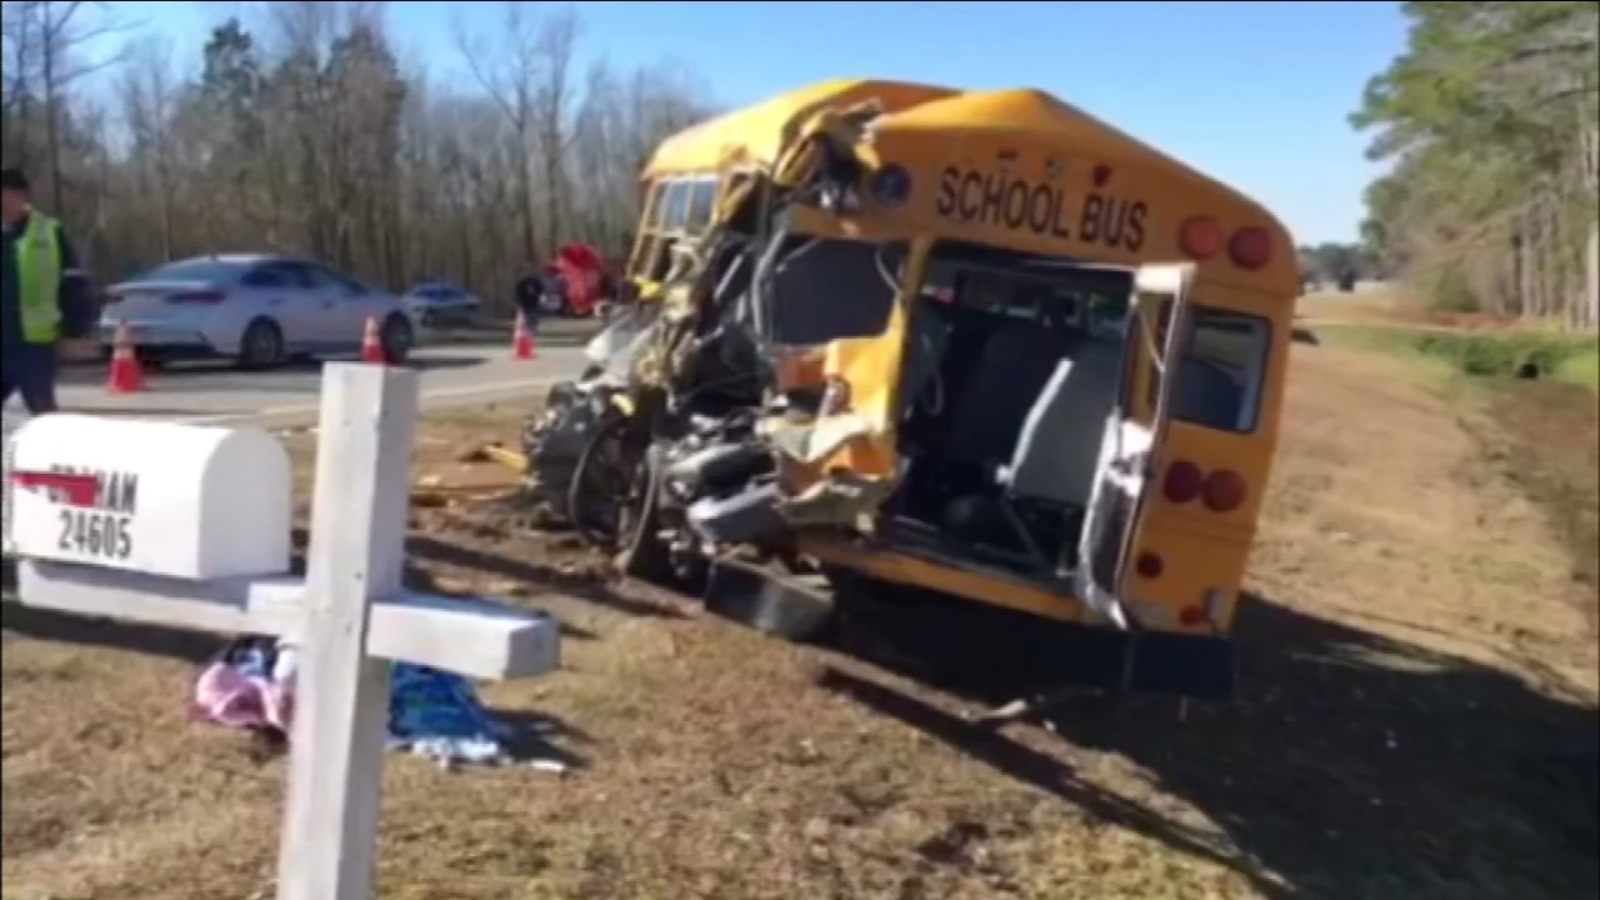 Tractor-trailer crashes into school bus, causing it to flip 3 times in eastern North Carolina 1